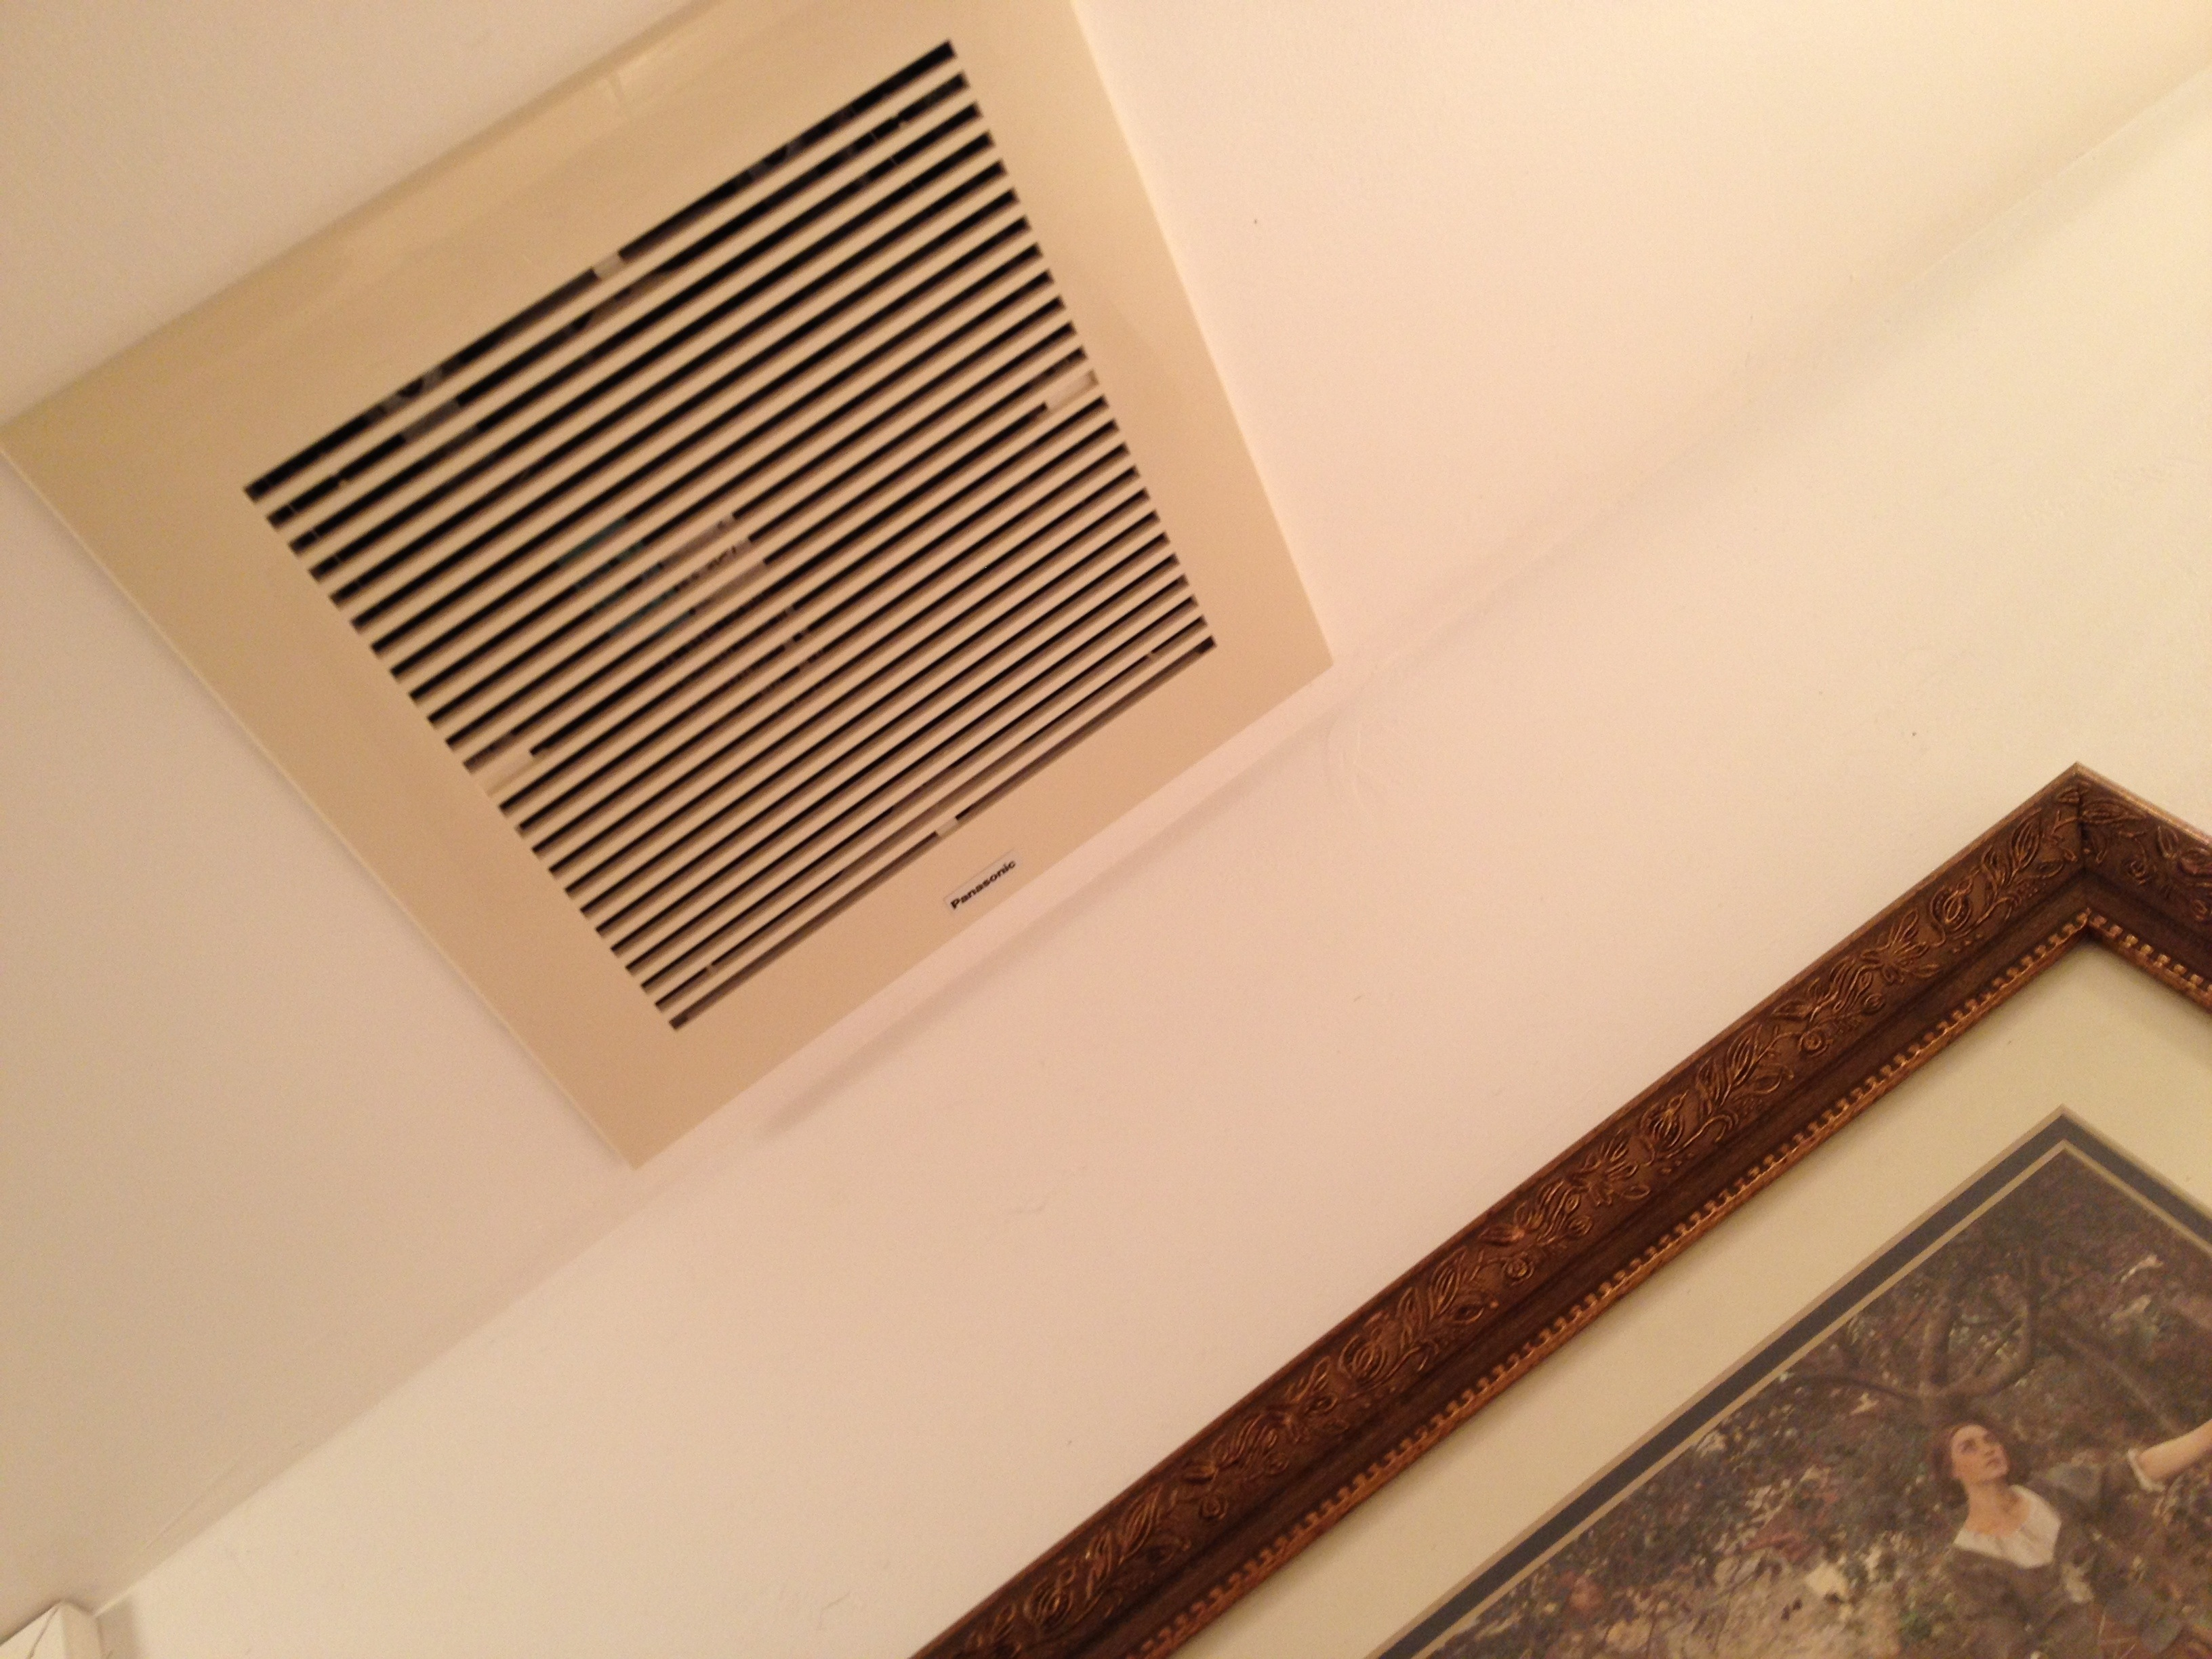 20130803 101908 jpg. My favorite Costco spices and cleaning a bathroom exhaust fan